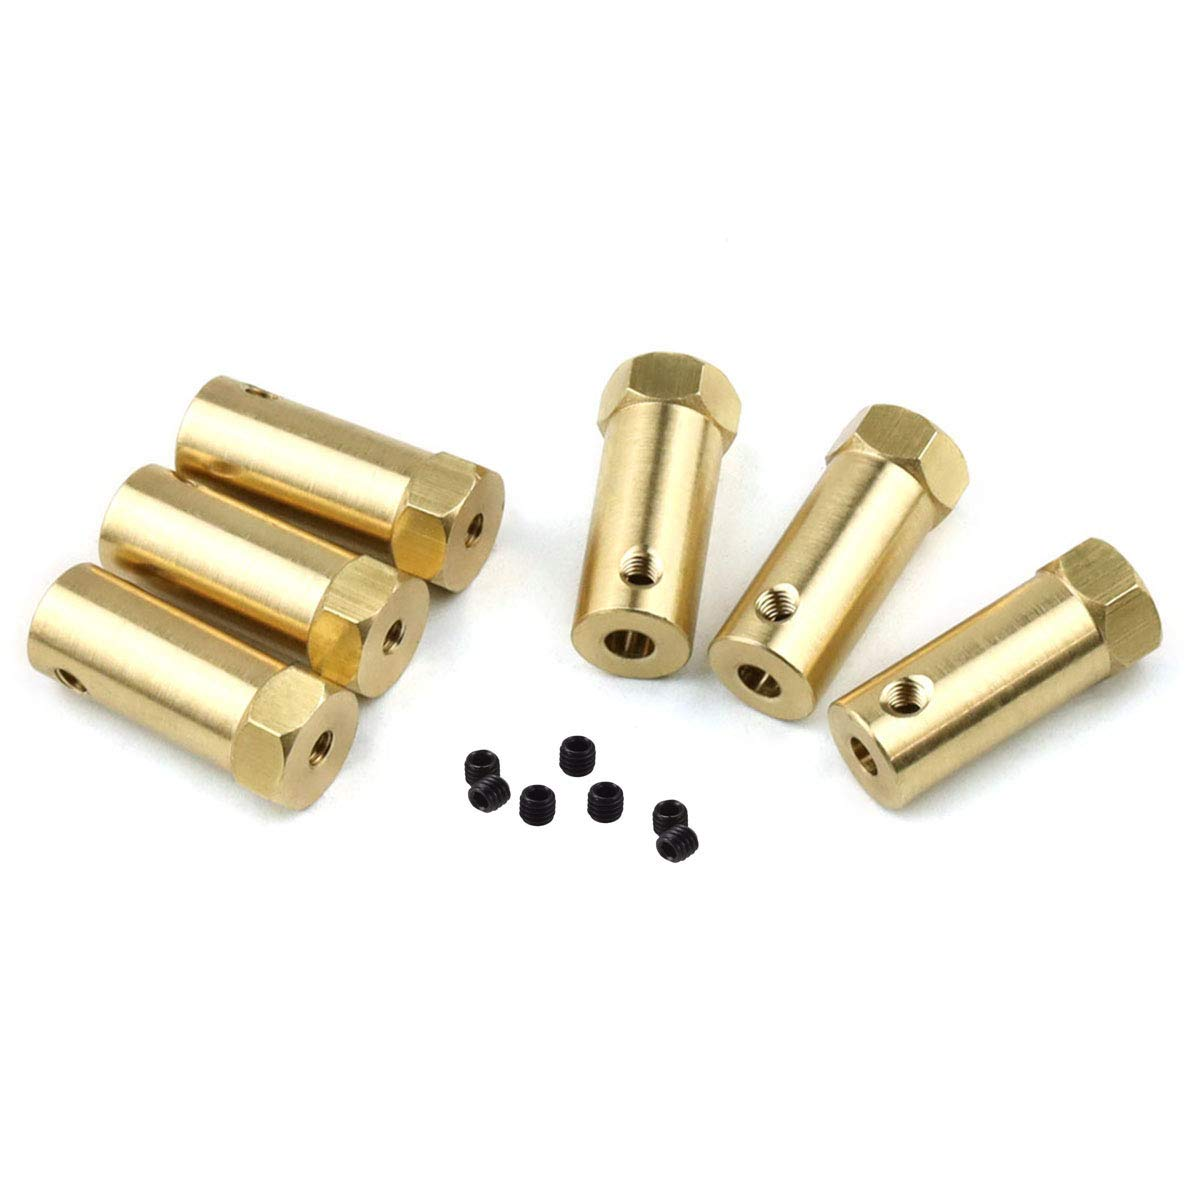 6 Pieces 5mm Flexible Coupling Coupler Connector Hex Coupler for Wheels Tires Shaft Motor